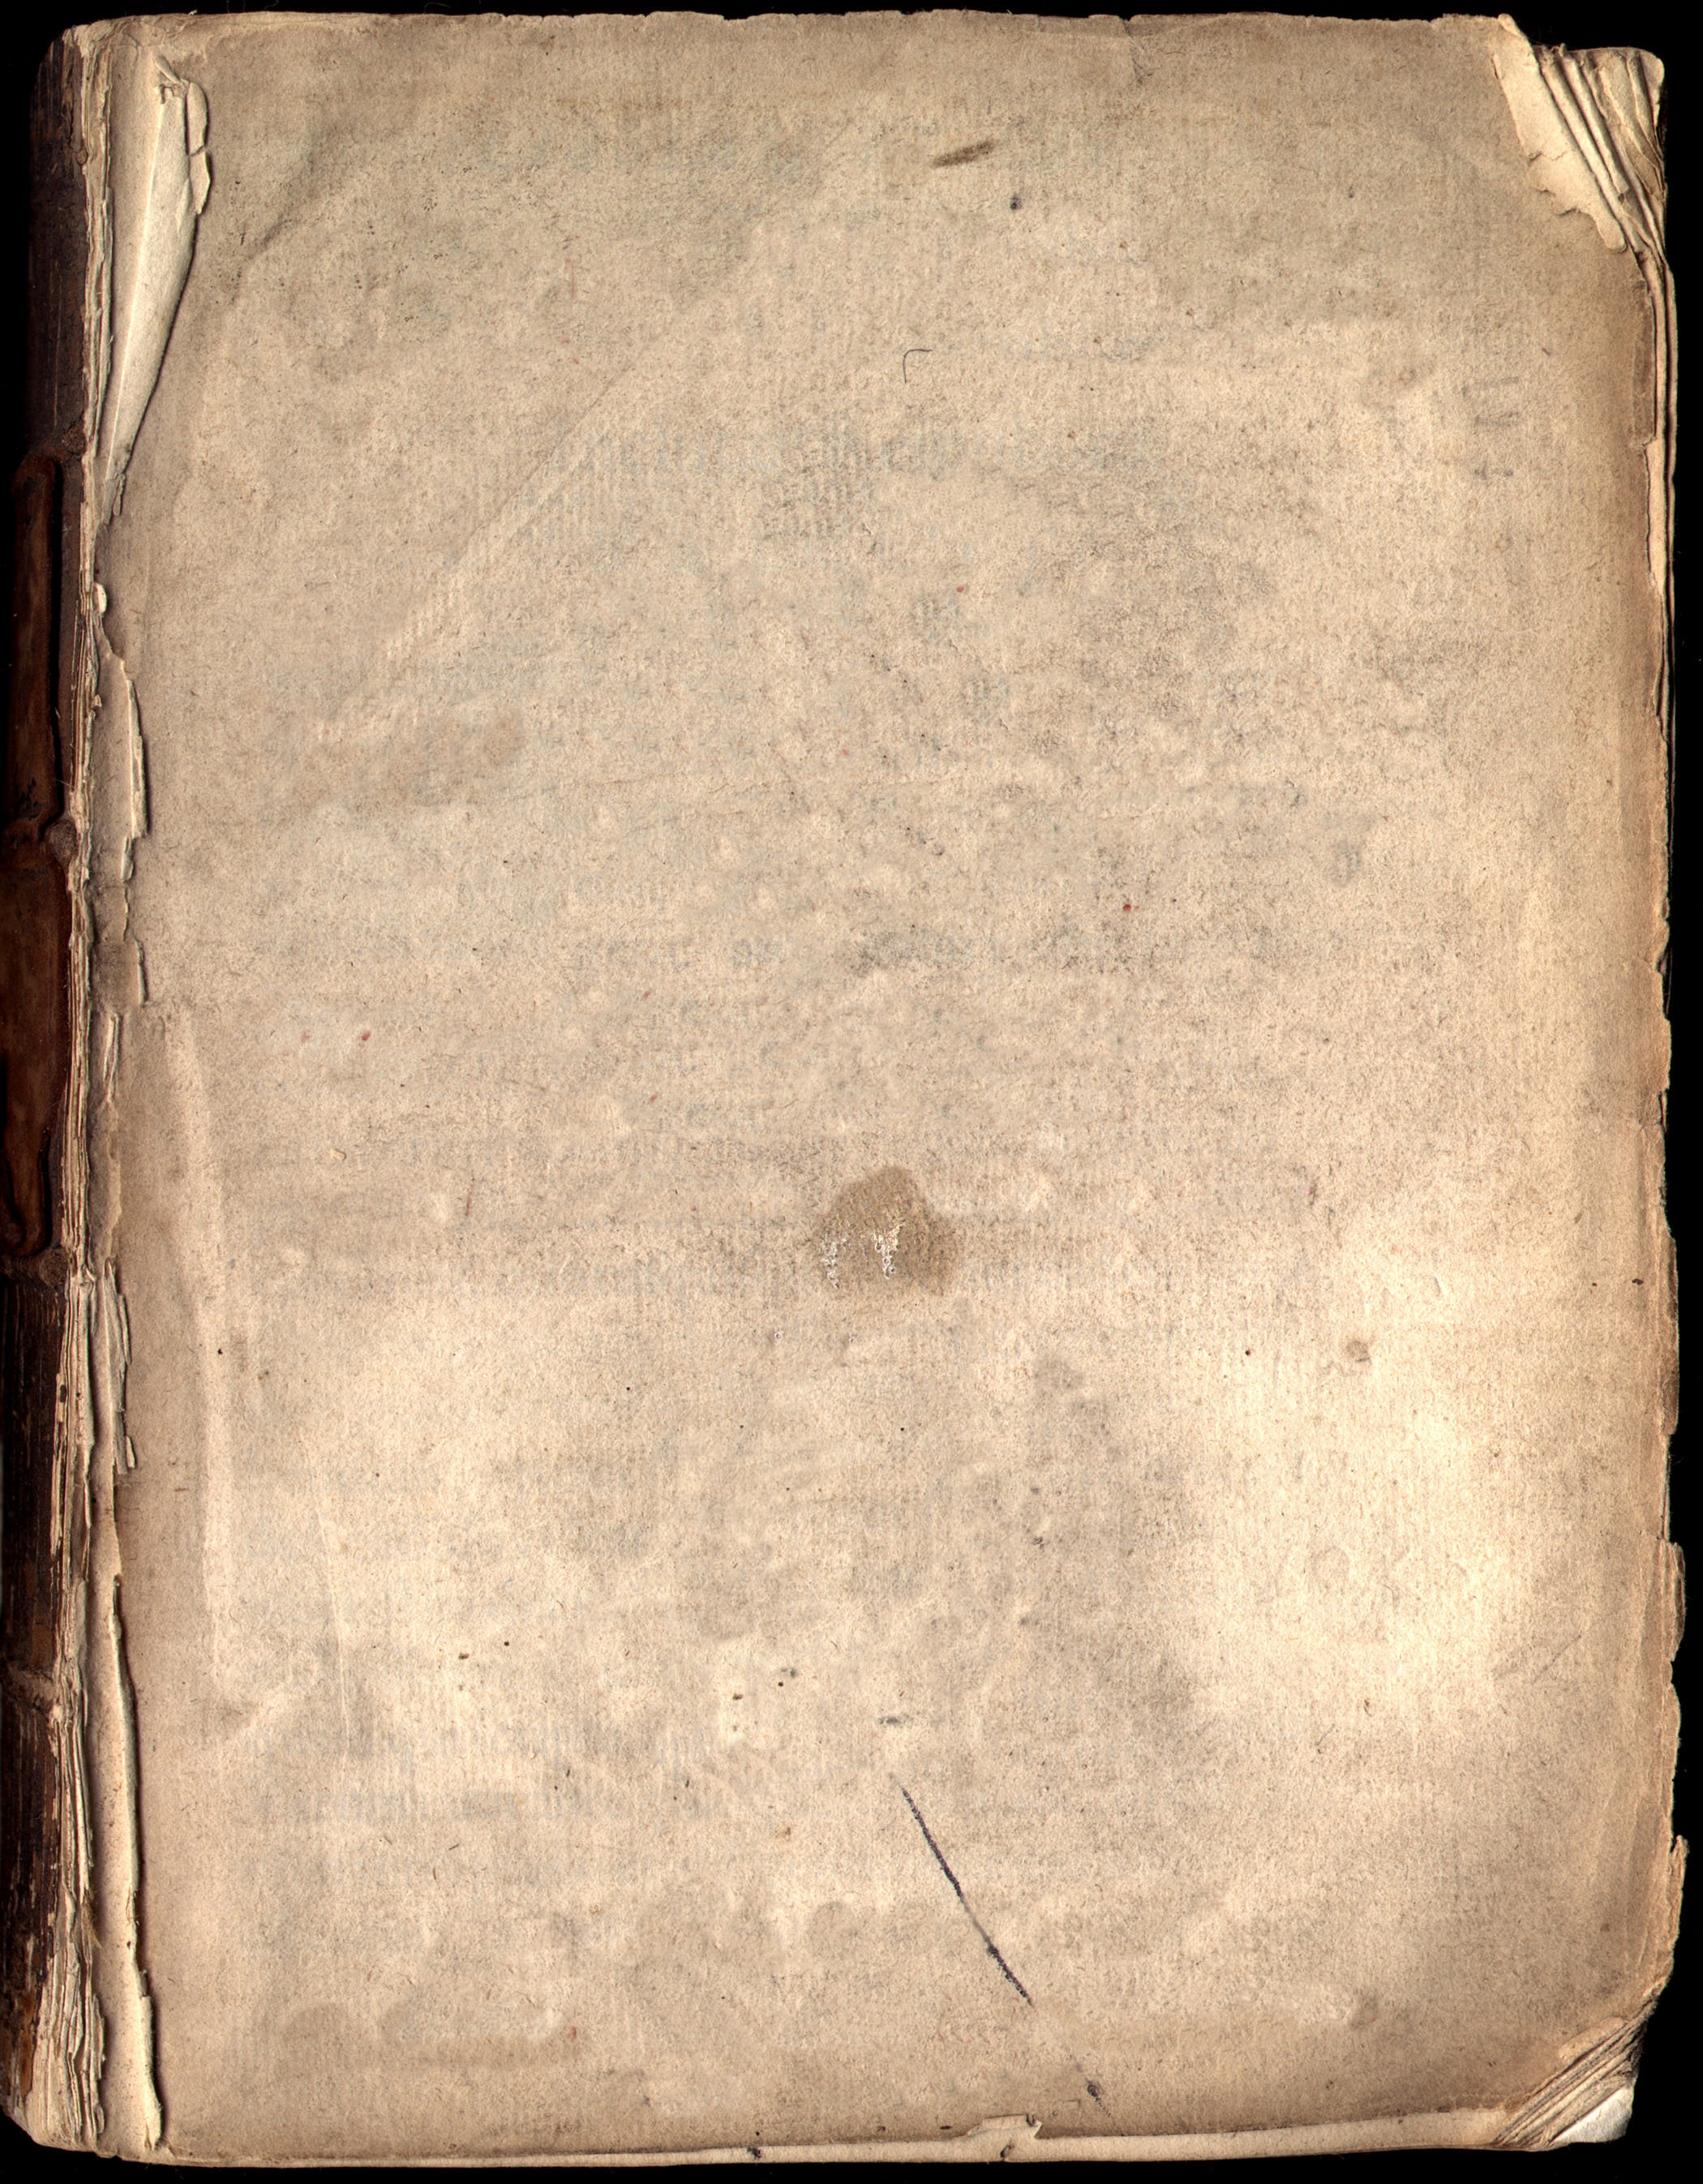 Old Latin Law Book Texture